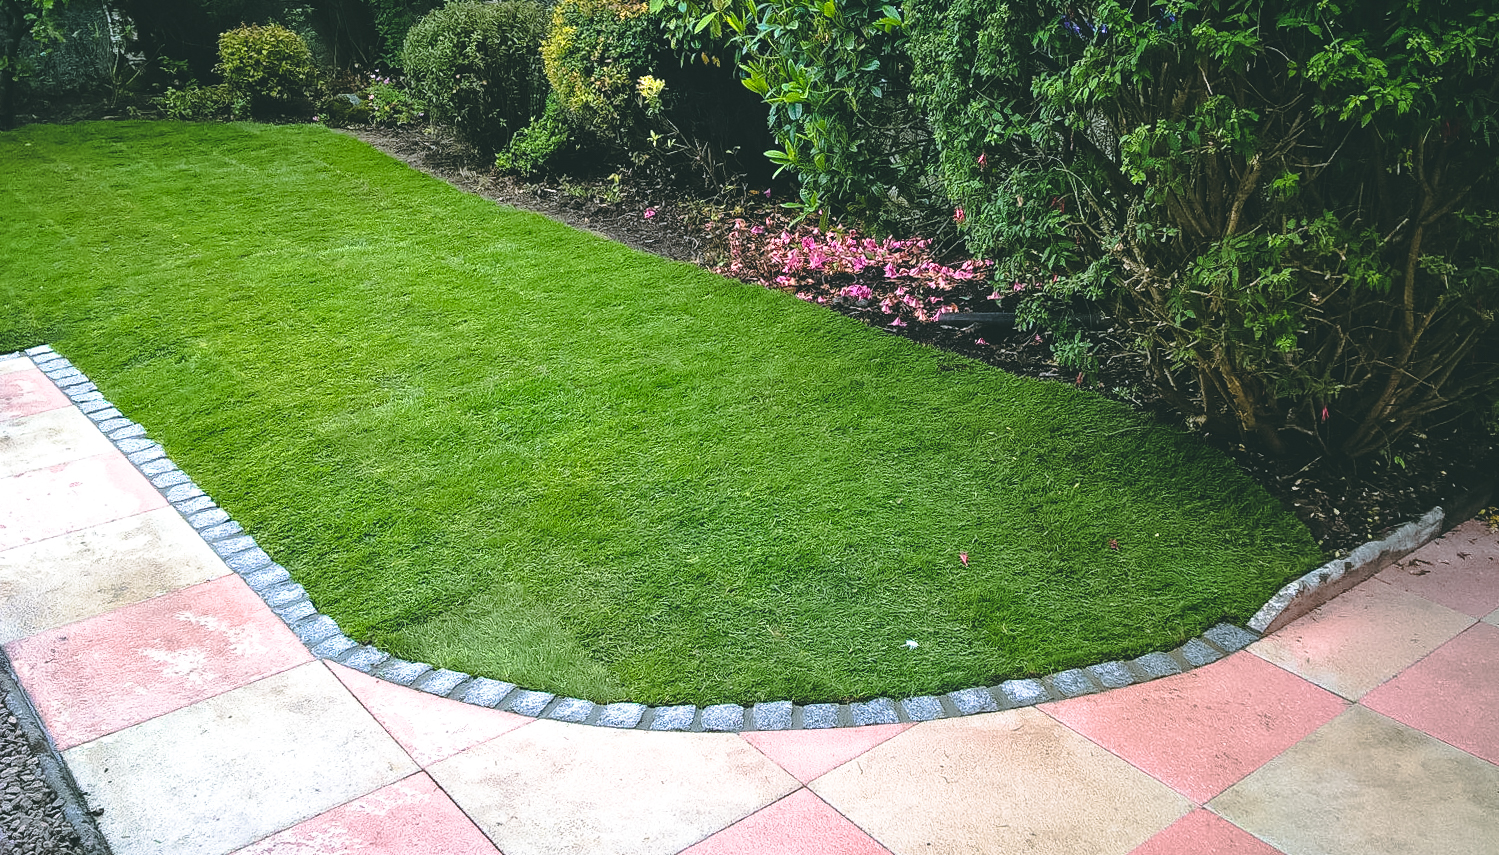 New slabbed area with granite edging and lawn